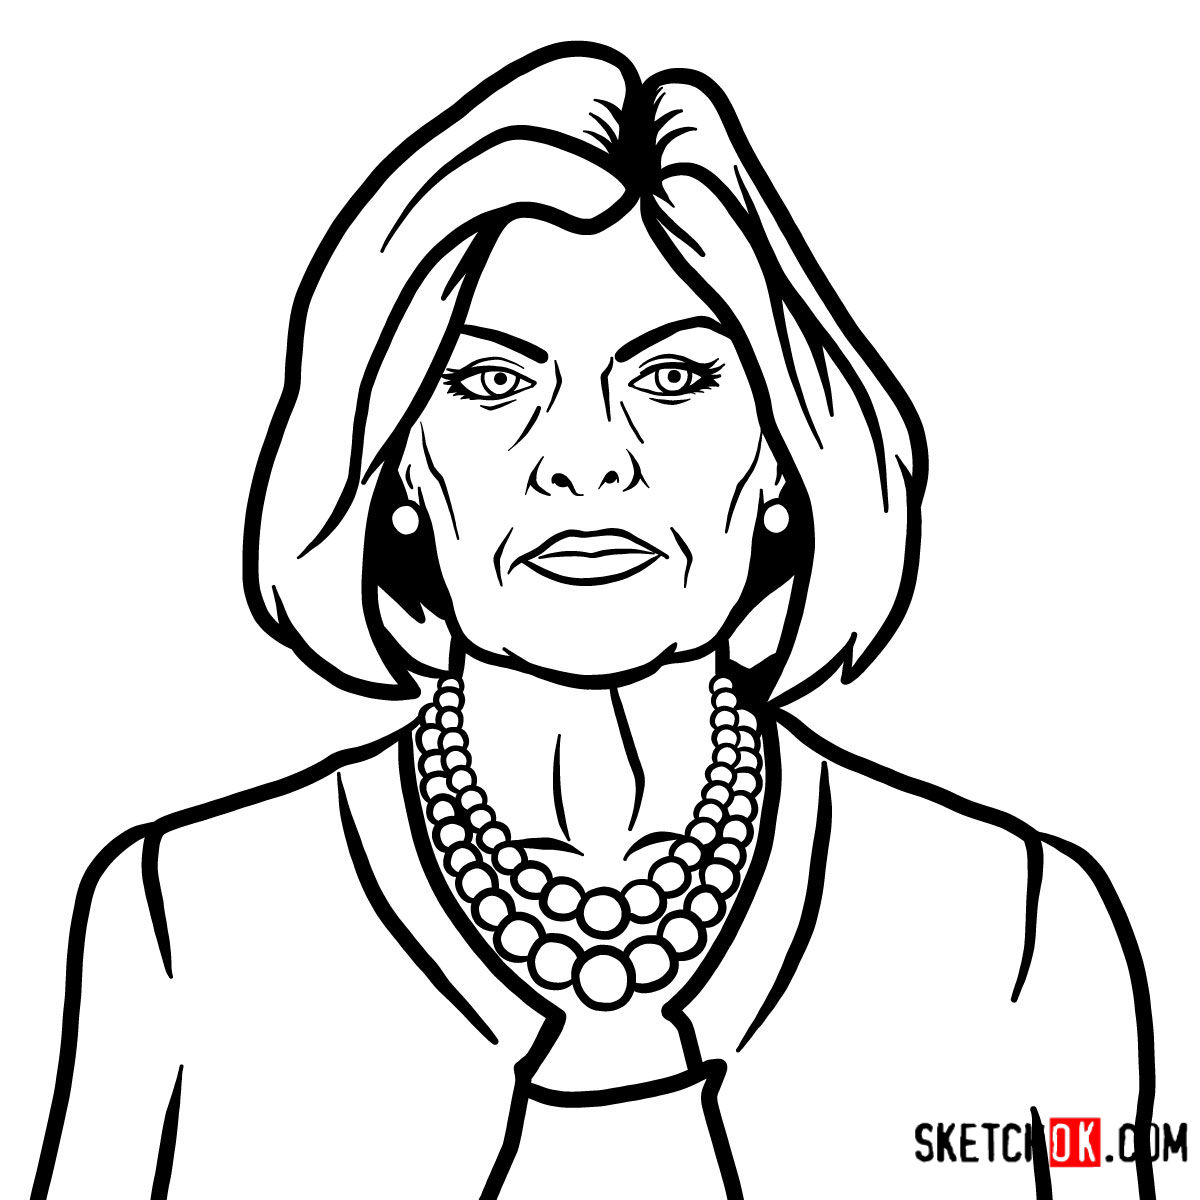 How to draw Malory Archer